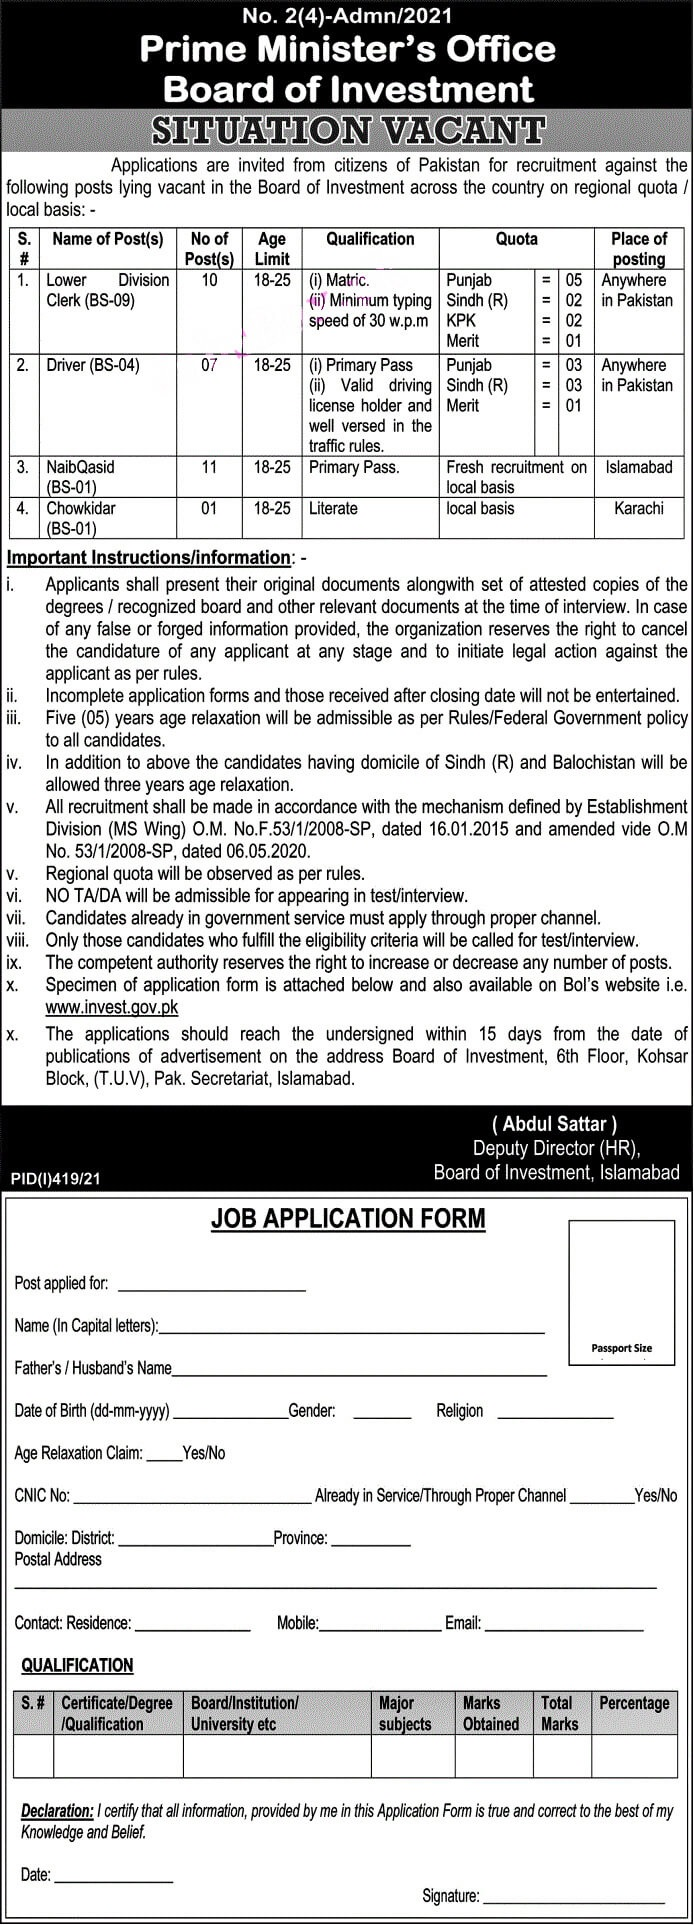 Prime Ministers Office Jobs 2021, Latest New Vacancies in PM office 2021